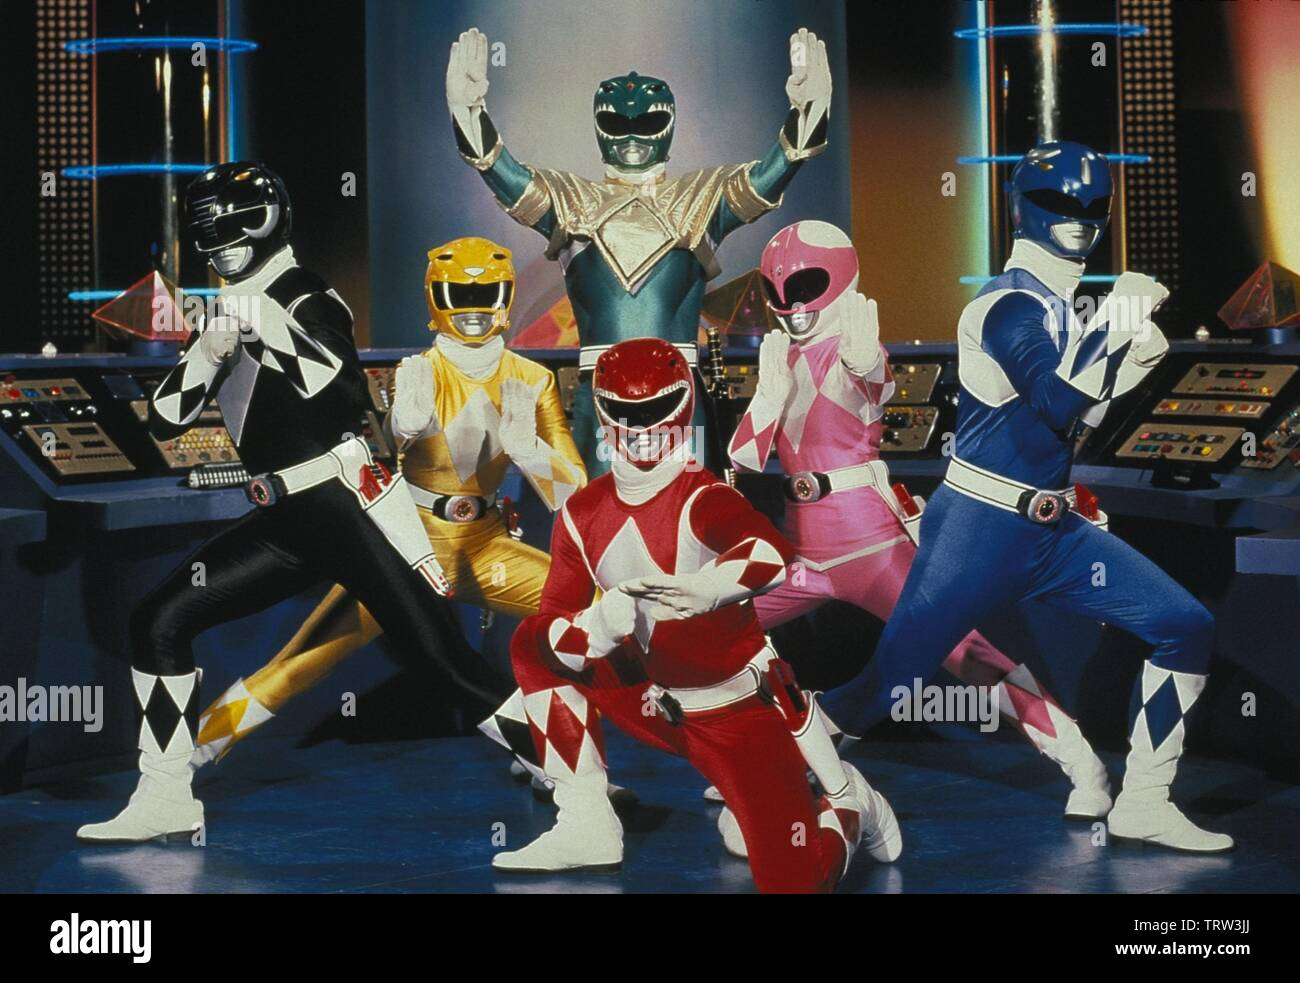 MIGHTY MORPHIN POWER RANGERS (1993). Copyright: Editorial use only. No merchandising or book covers. This is a publicly distributed handout. Access rights only, no license of copyright provided. Only to be reproduced in conjunction with promotion of this film. Credit: TOEI CO. LTD. / Album - Stock Image